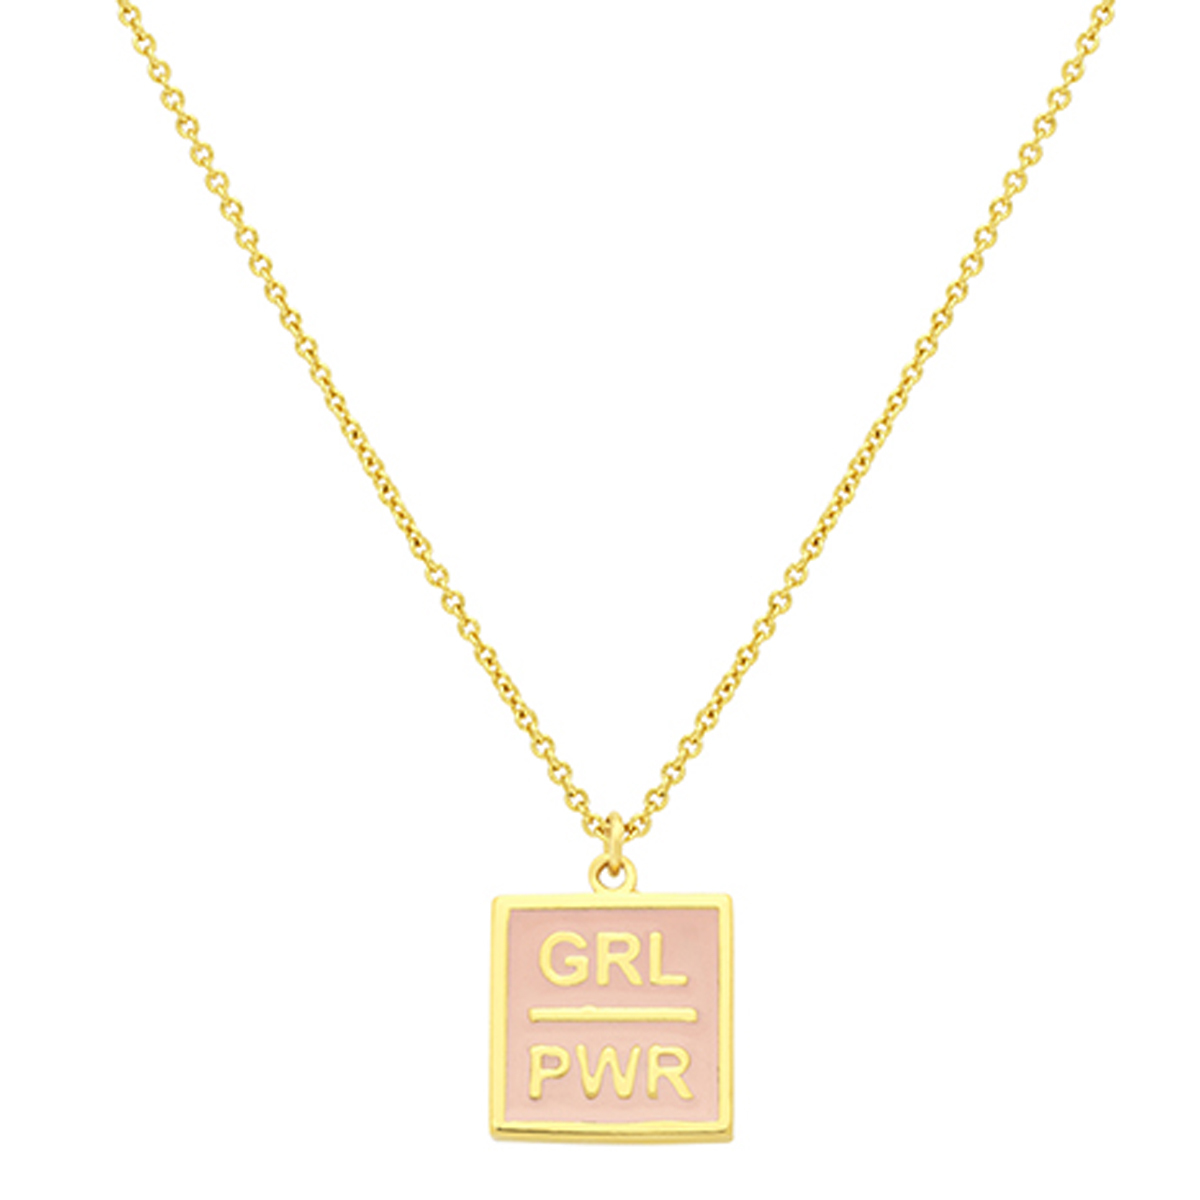 "Collar ""Girl Power"", de María Pascual (40 euros)."